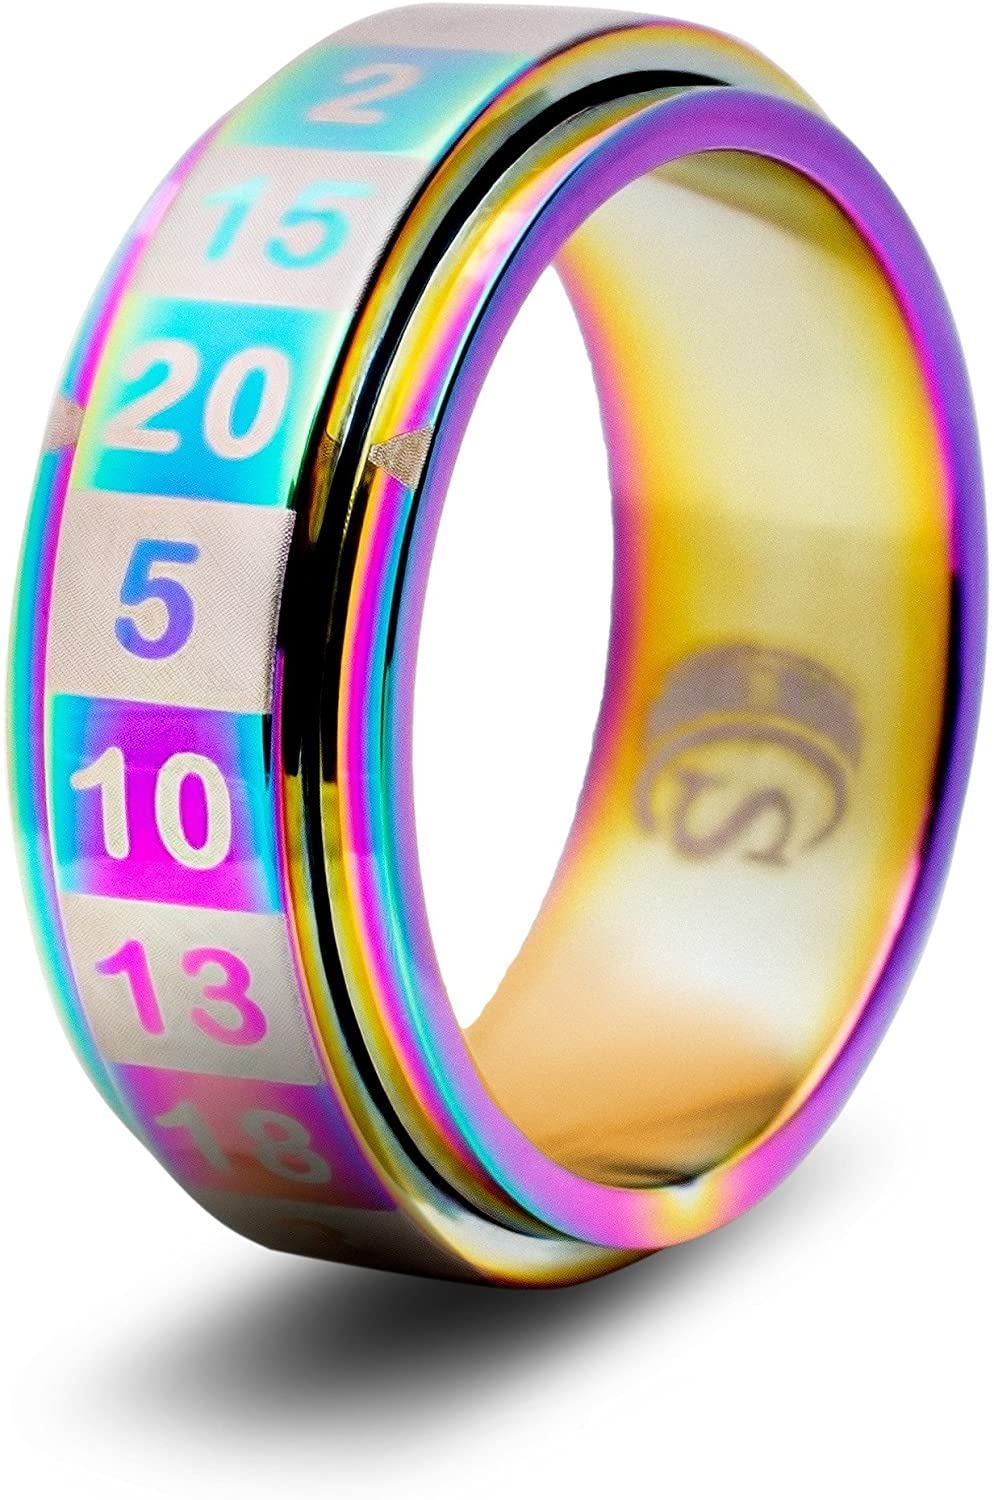 CritSuccess d20 Dice Ring with 20 Sided Die Spinner (Size 11 - Stainless Steel - Rainbow)